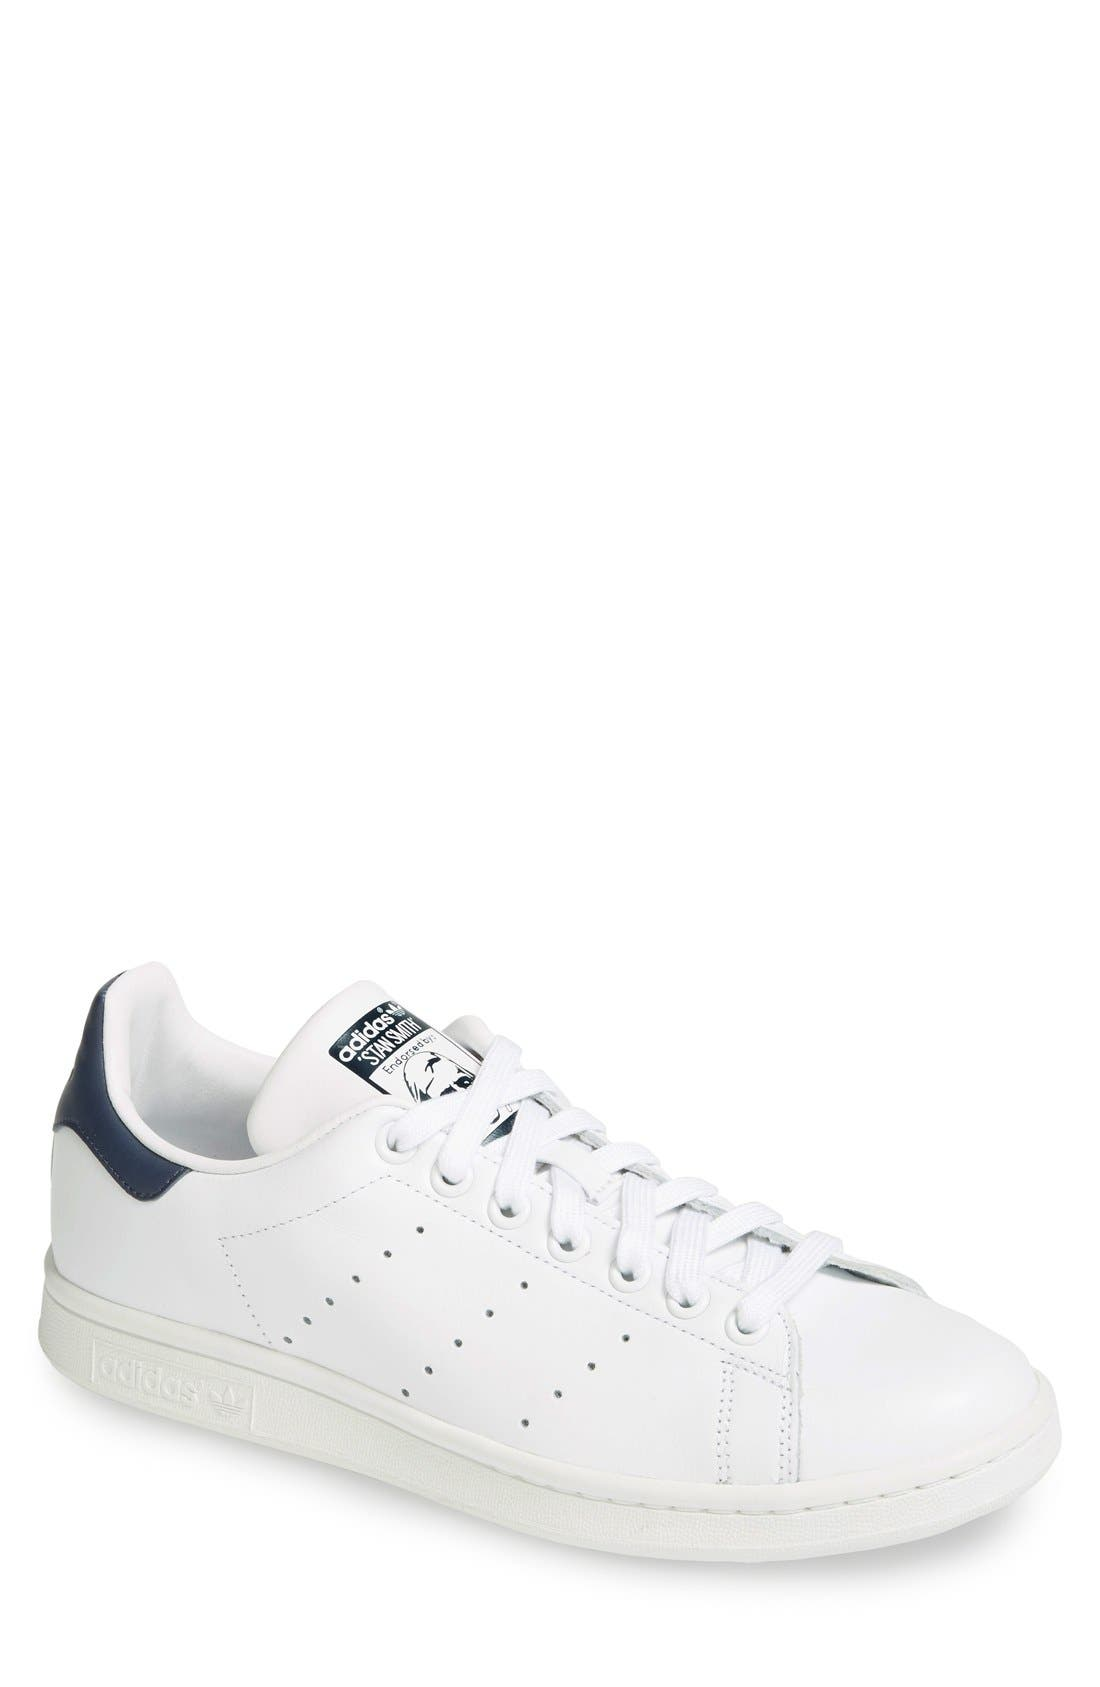 c21c5833453 adidas - Men s Casual Fashion Shoes and Sneakers